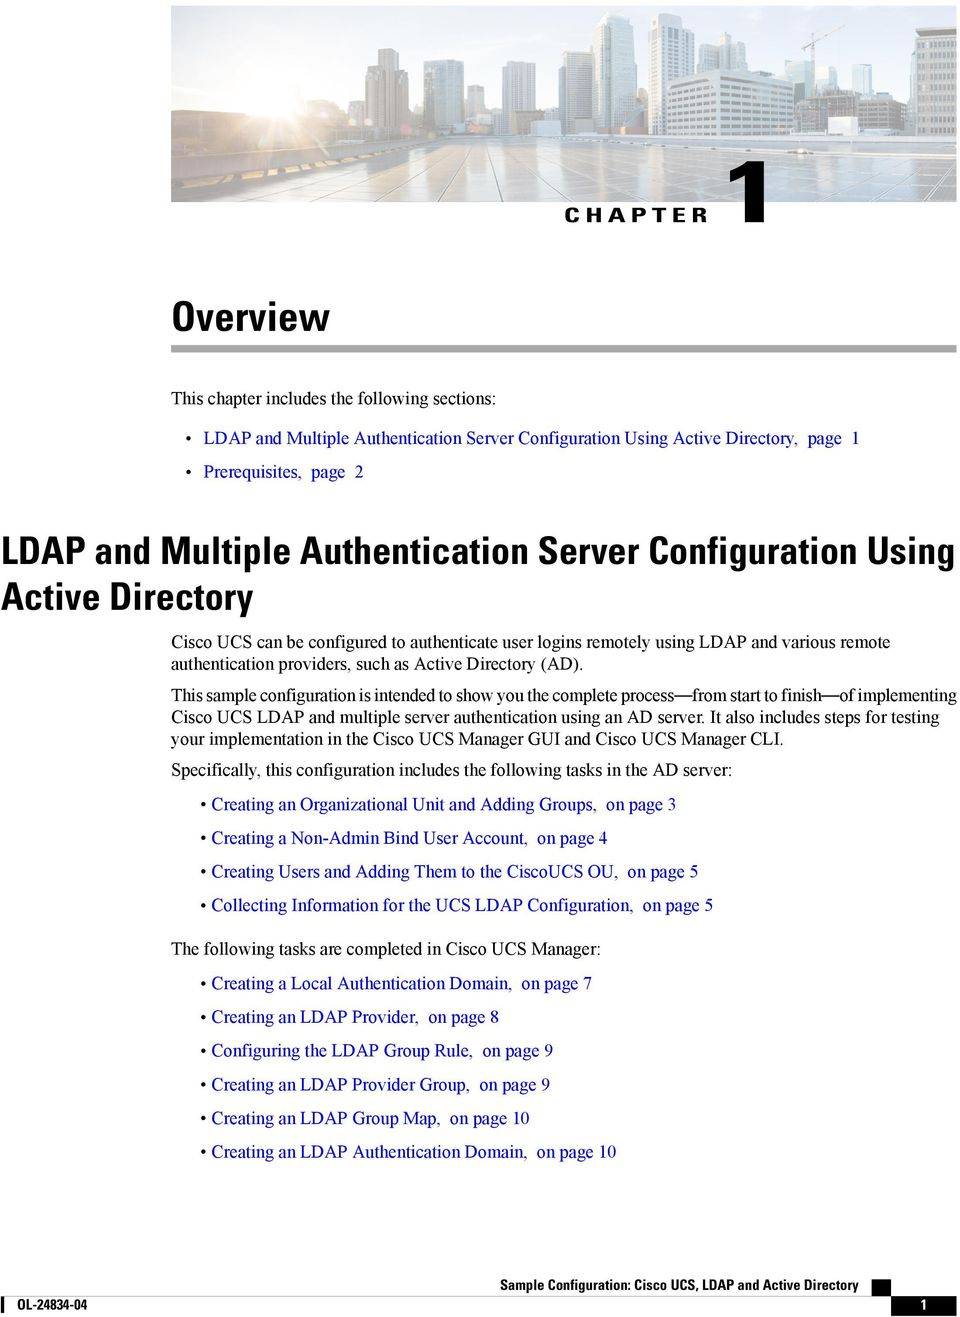 Directory (AD). This sample configuration is intended to show you the complete process from start to finish of implementing Cisco UCS LDAP and multiple server authentication using an AD server.